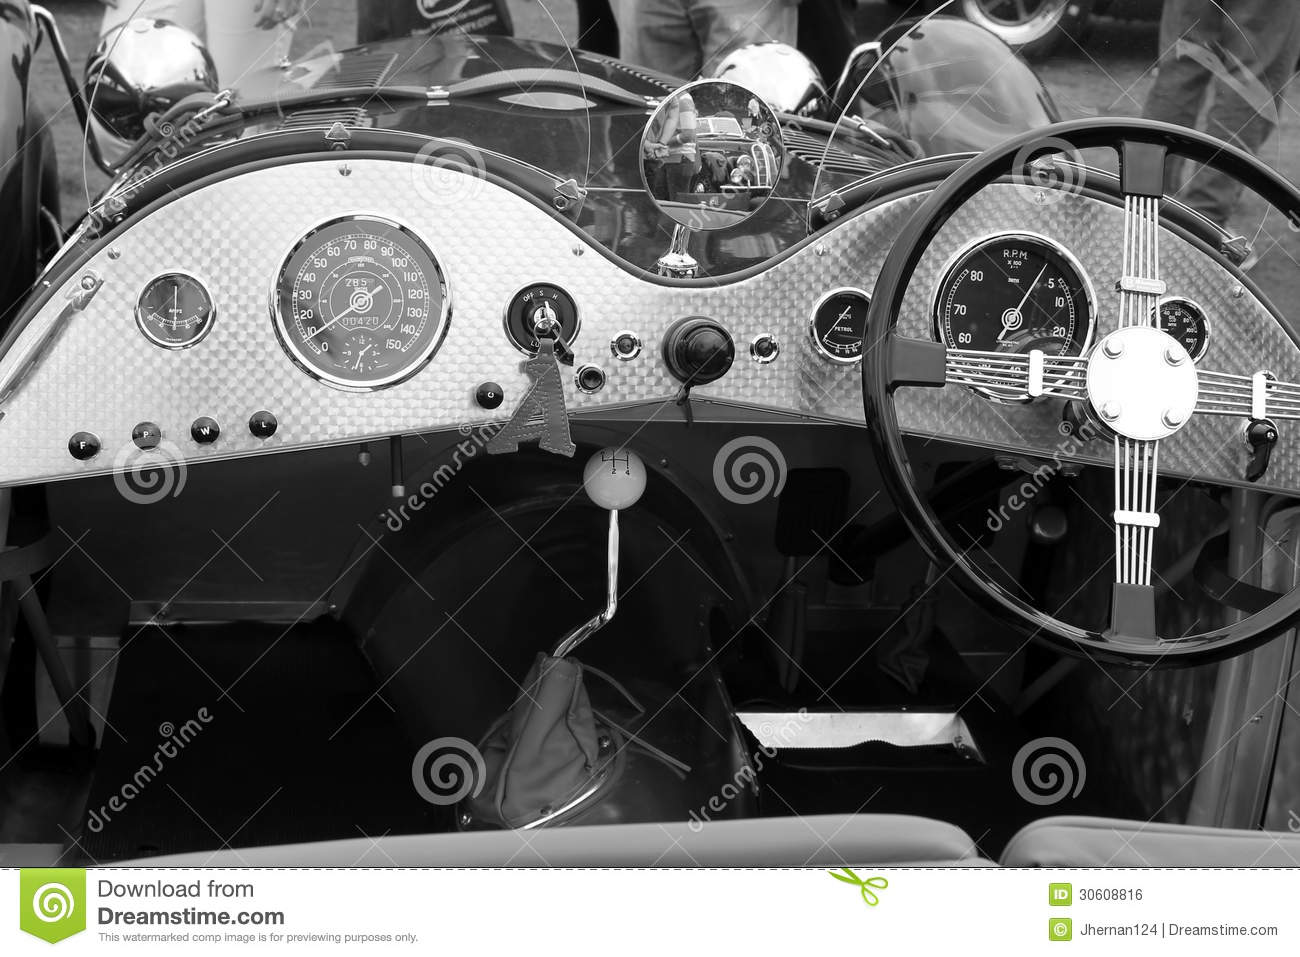 Vintage British Sports Car Interior Royalty Free Stock Image  Image